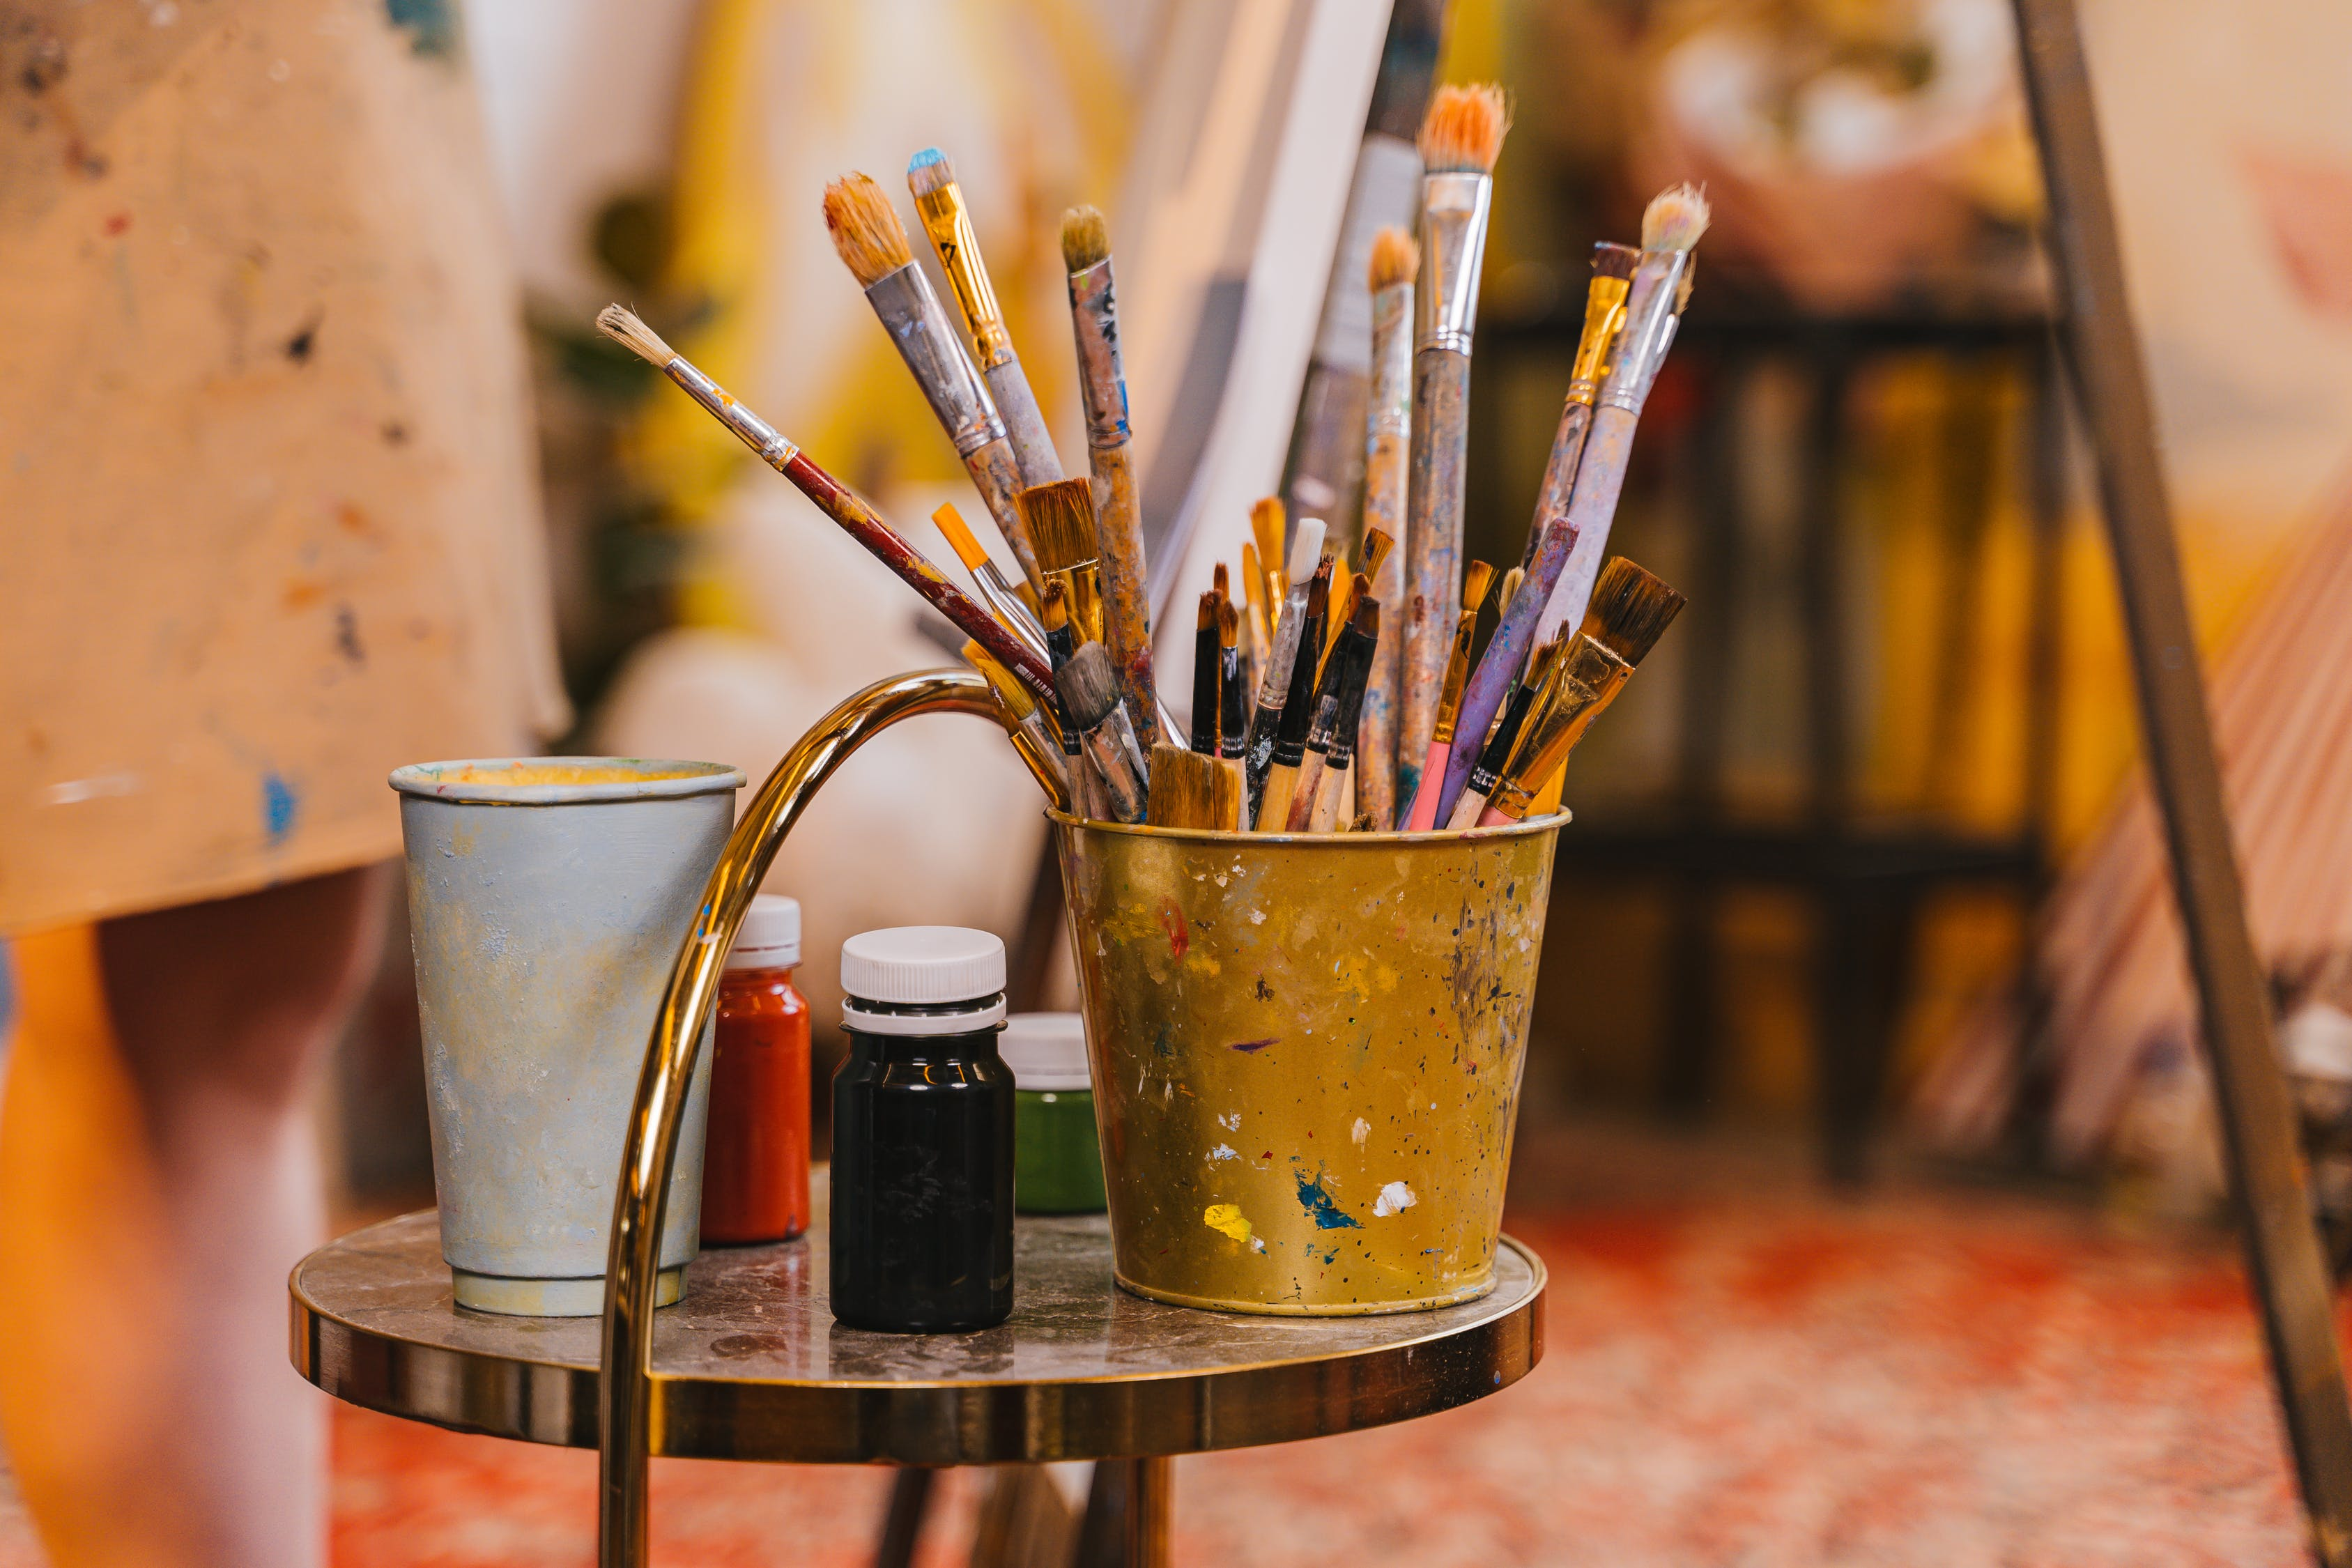 Paint Brushes in Stainless Steel Bucket